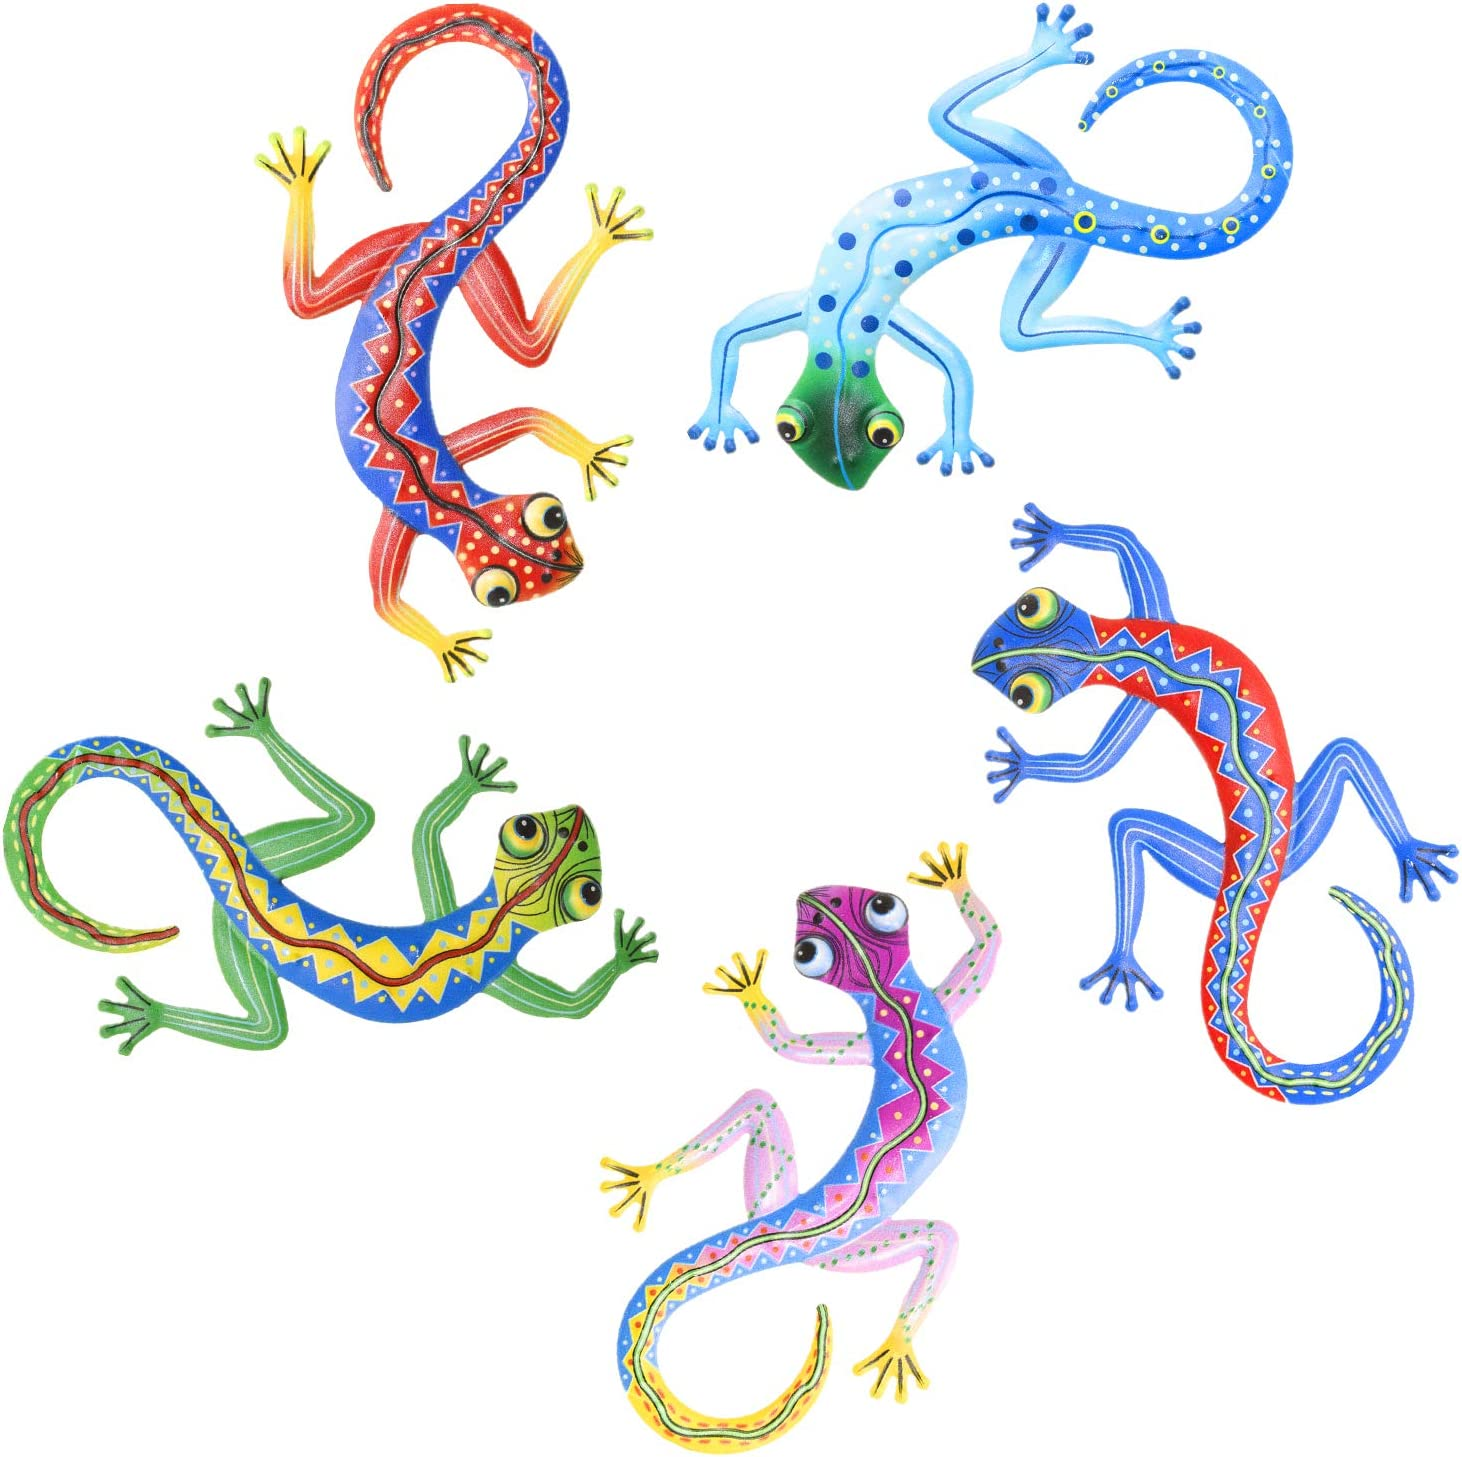 Metal Gecko Wall Decor Art Set of 5 Hanging for Outdoor Backyard Porch Home Patio Lawn Fence Decorations Wall Sculptures